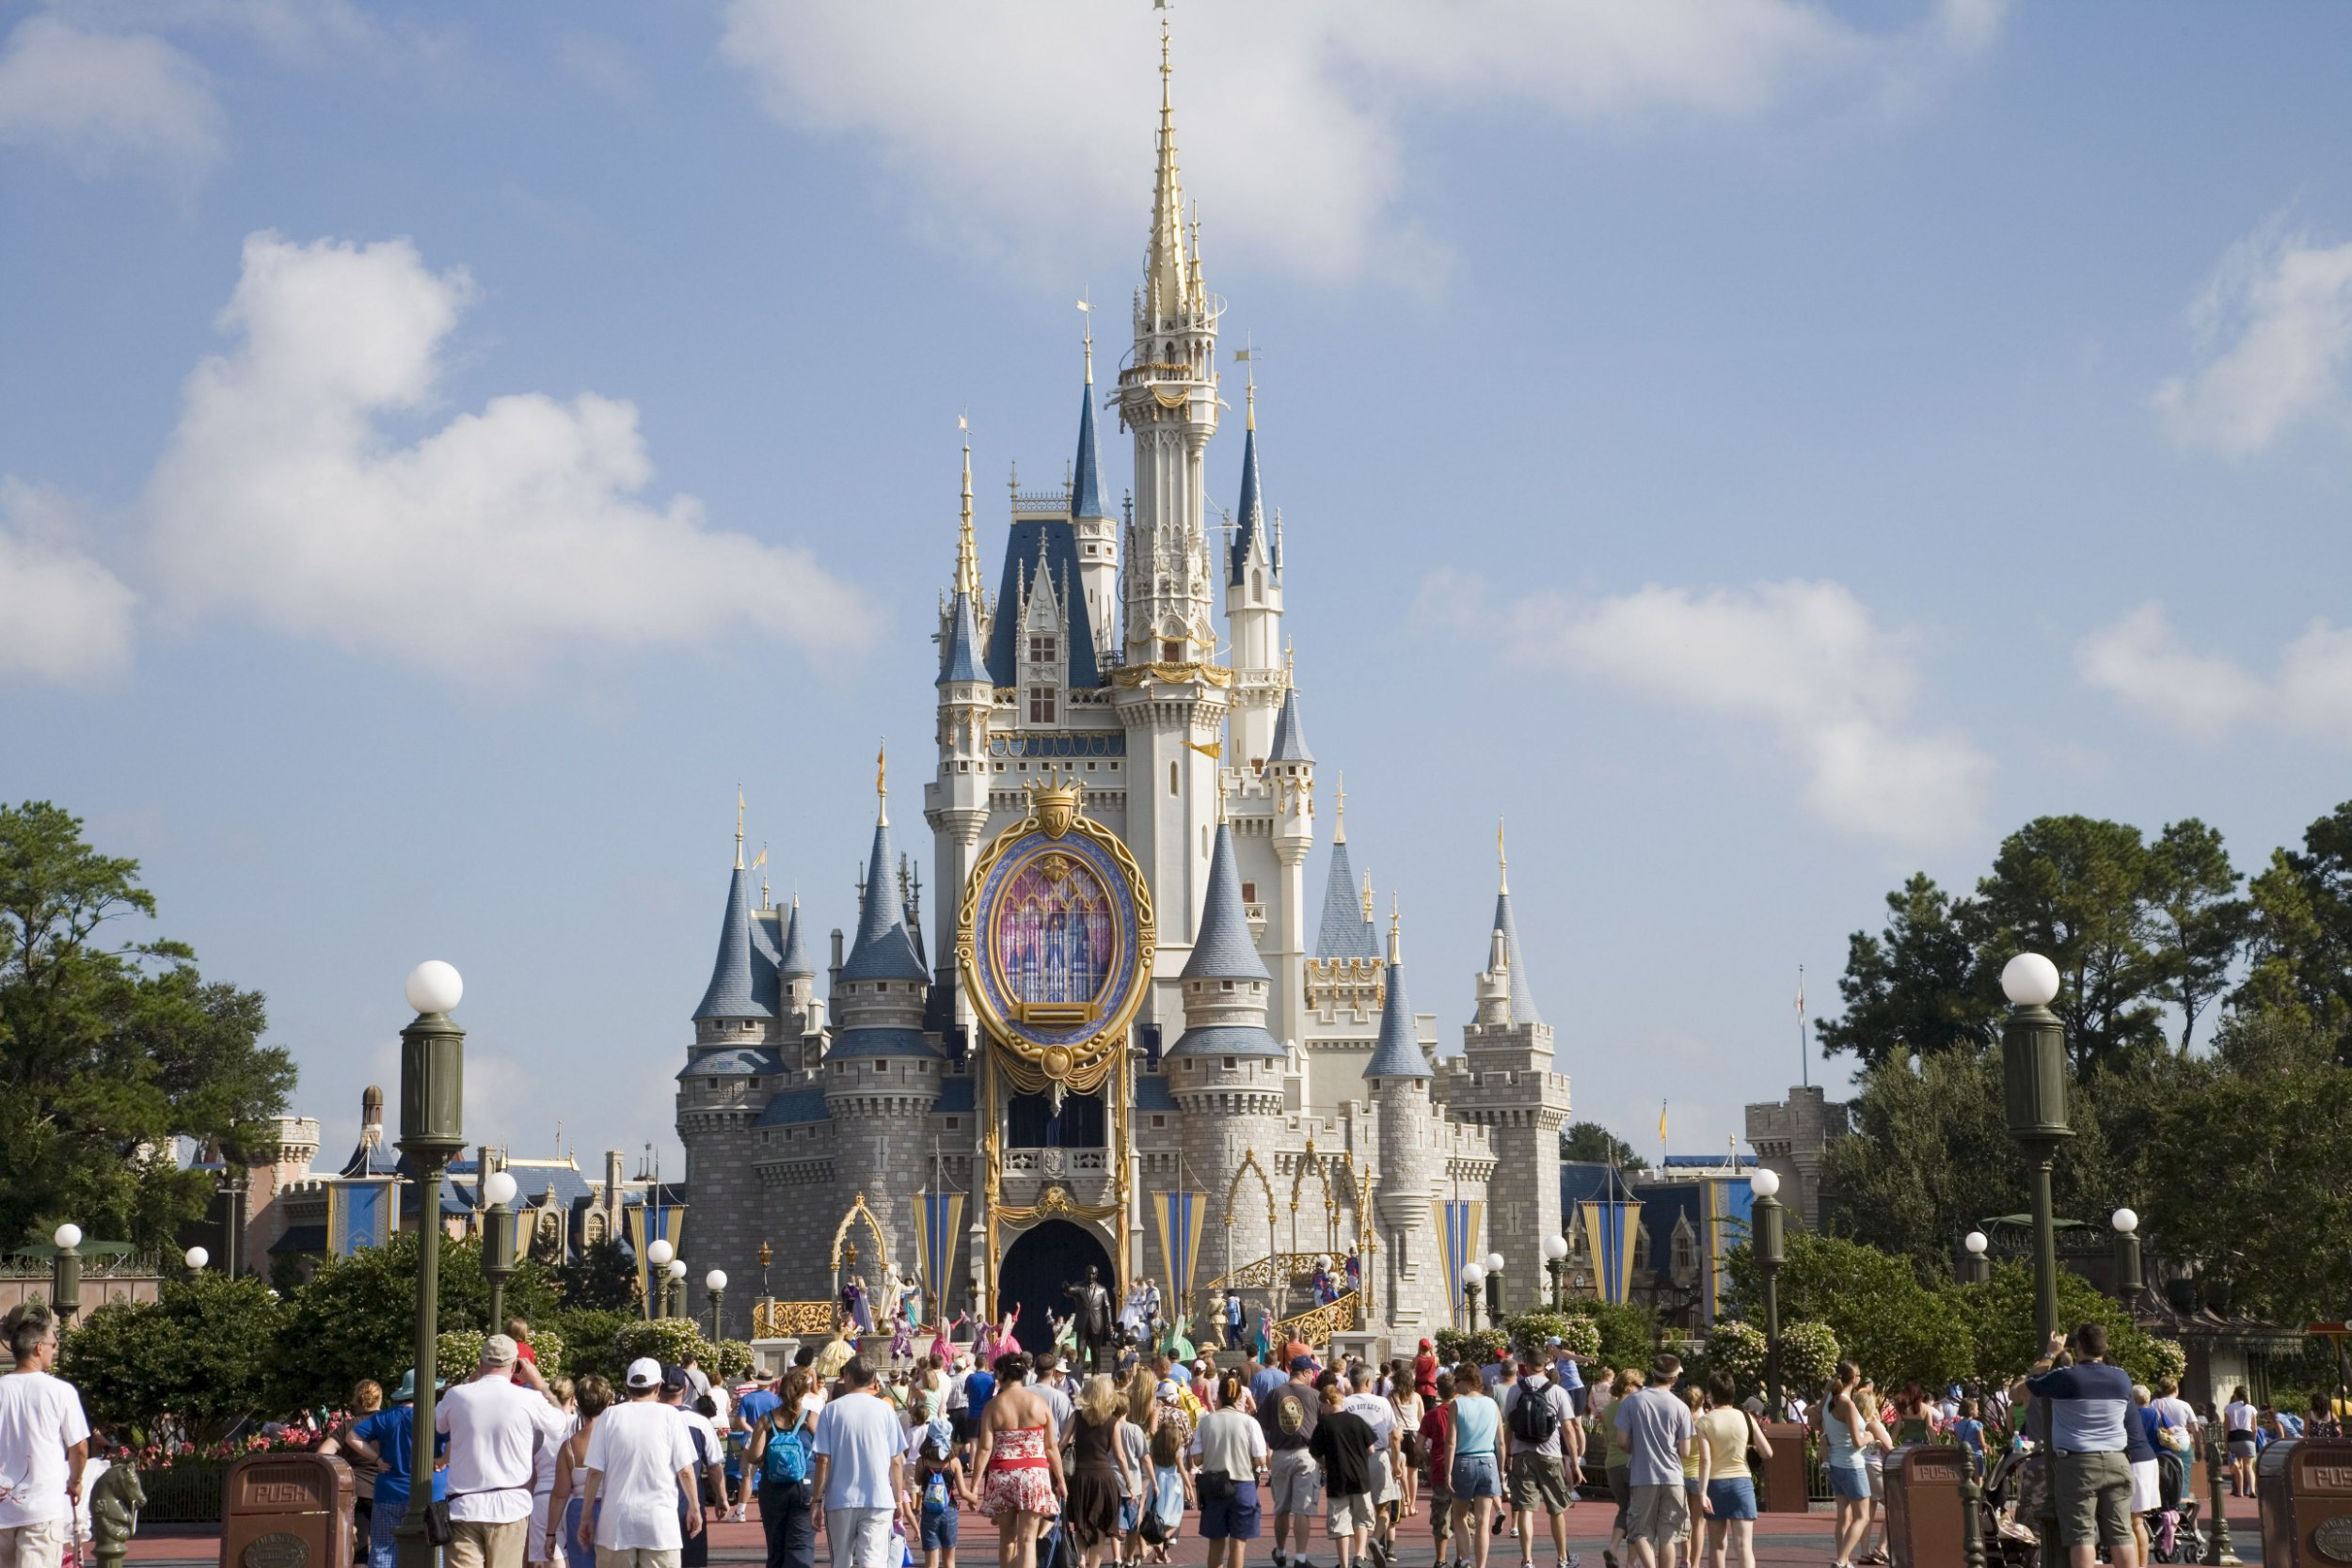 Mandatory Credit: Photo by Angelo Cavalli/robertharding/REX/Shutterstock (876391a) Disney World, Orlando, Florida, United States of America, North America VARIOUS